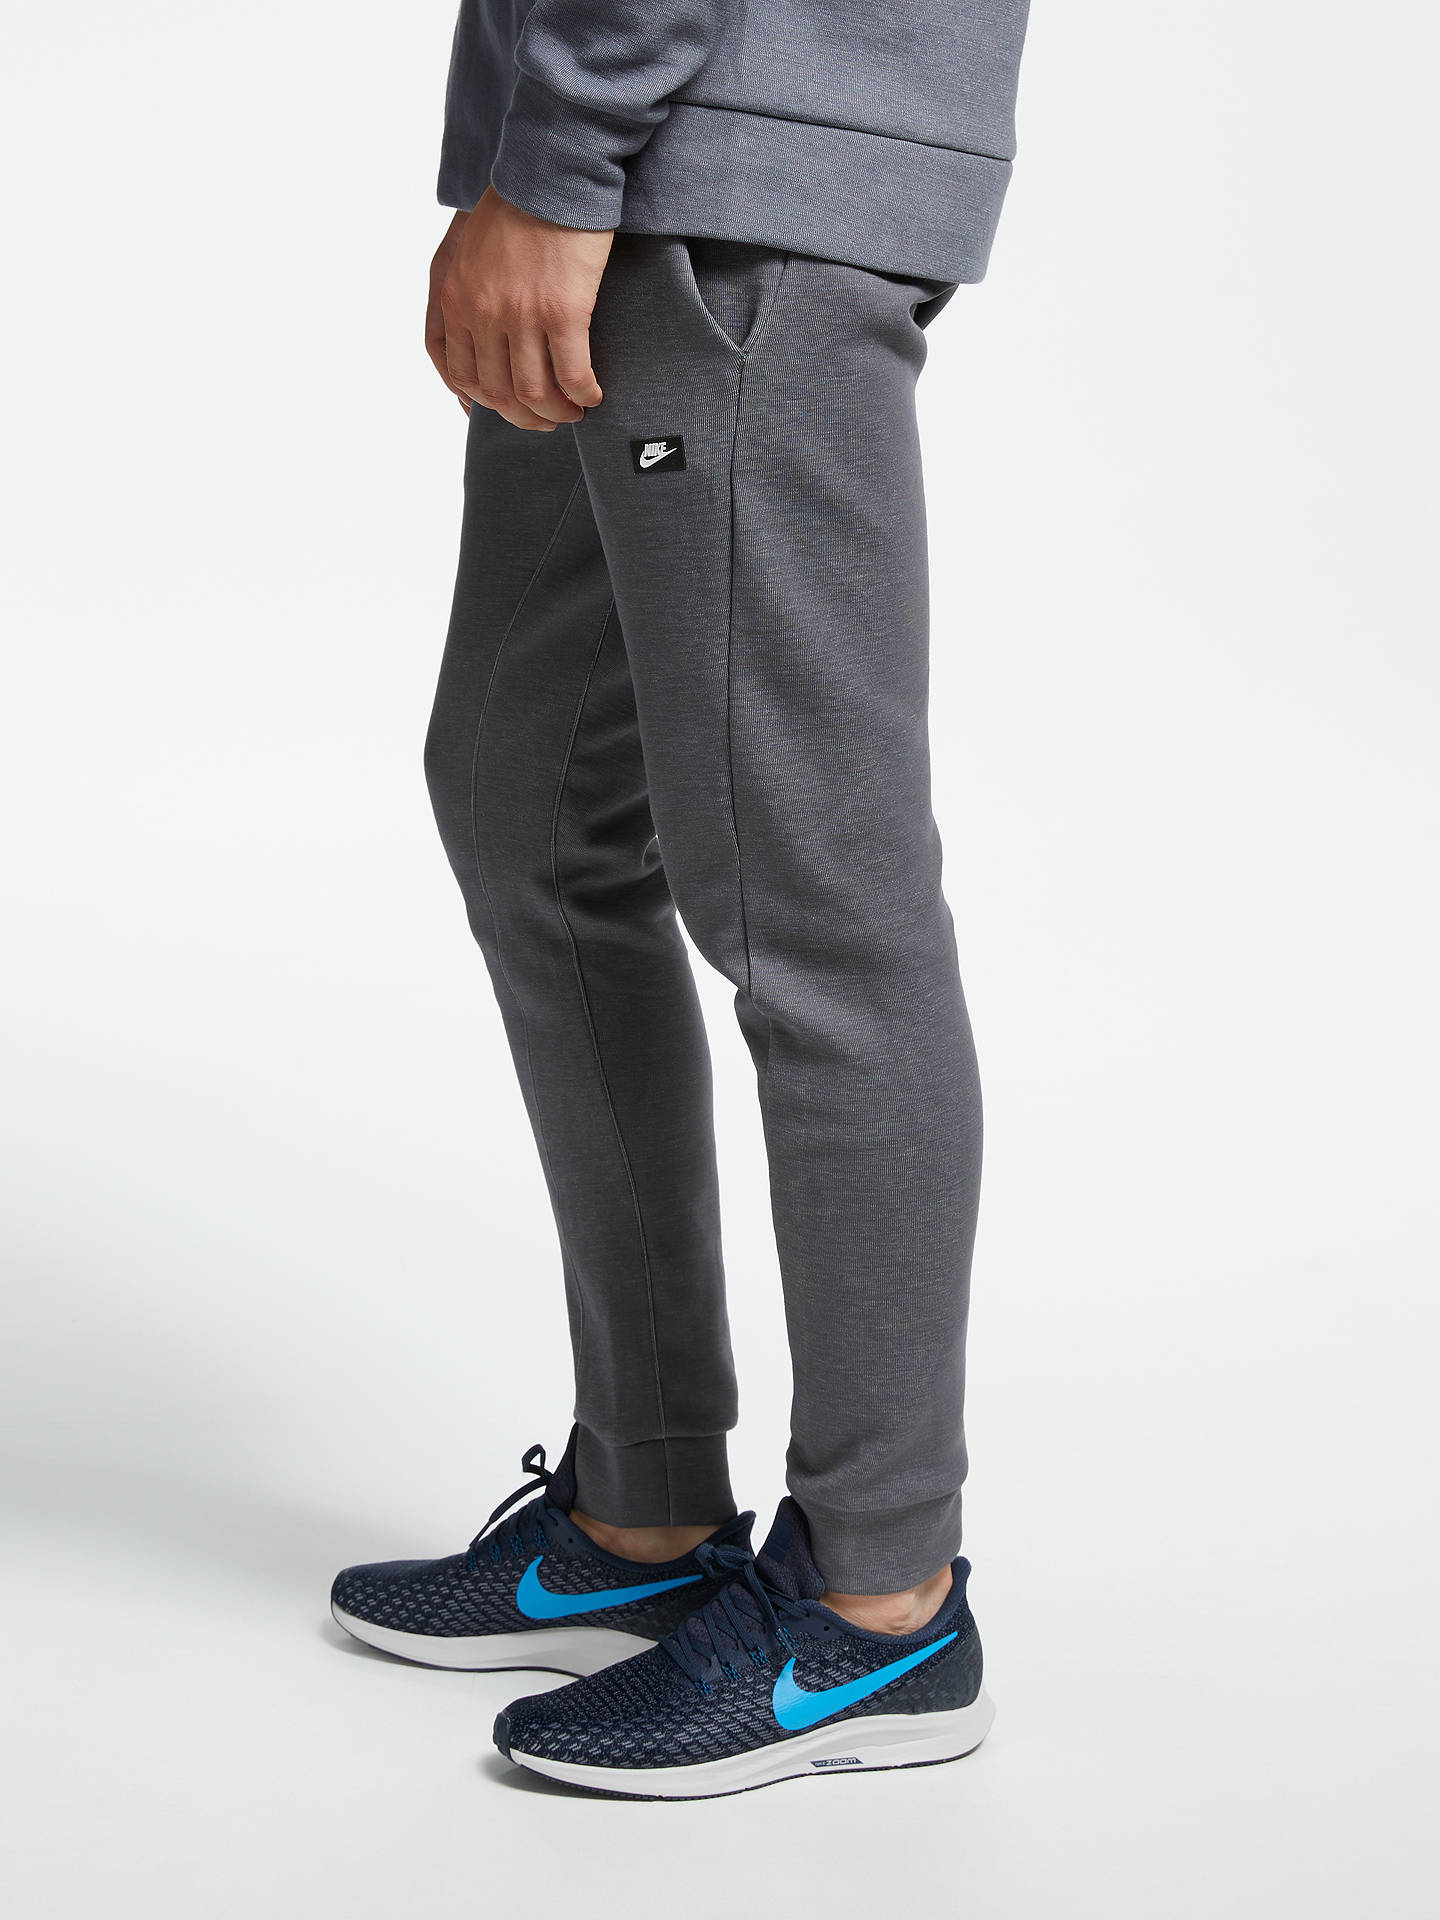 mostrar alimentar Extremo  nike optic knit joggers sale 325f5 18297